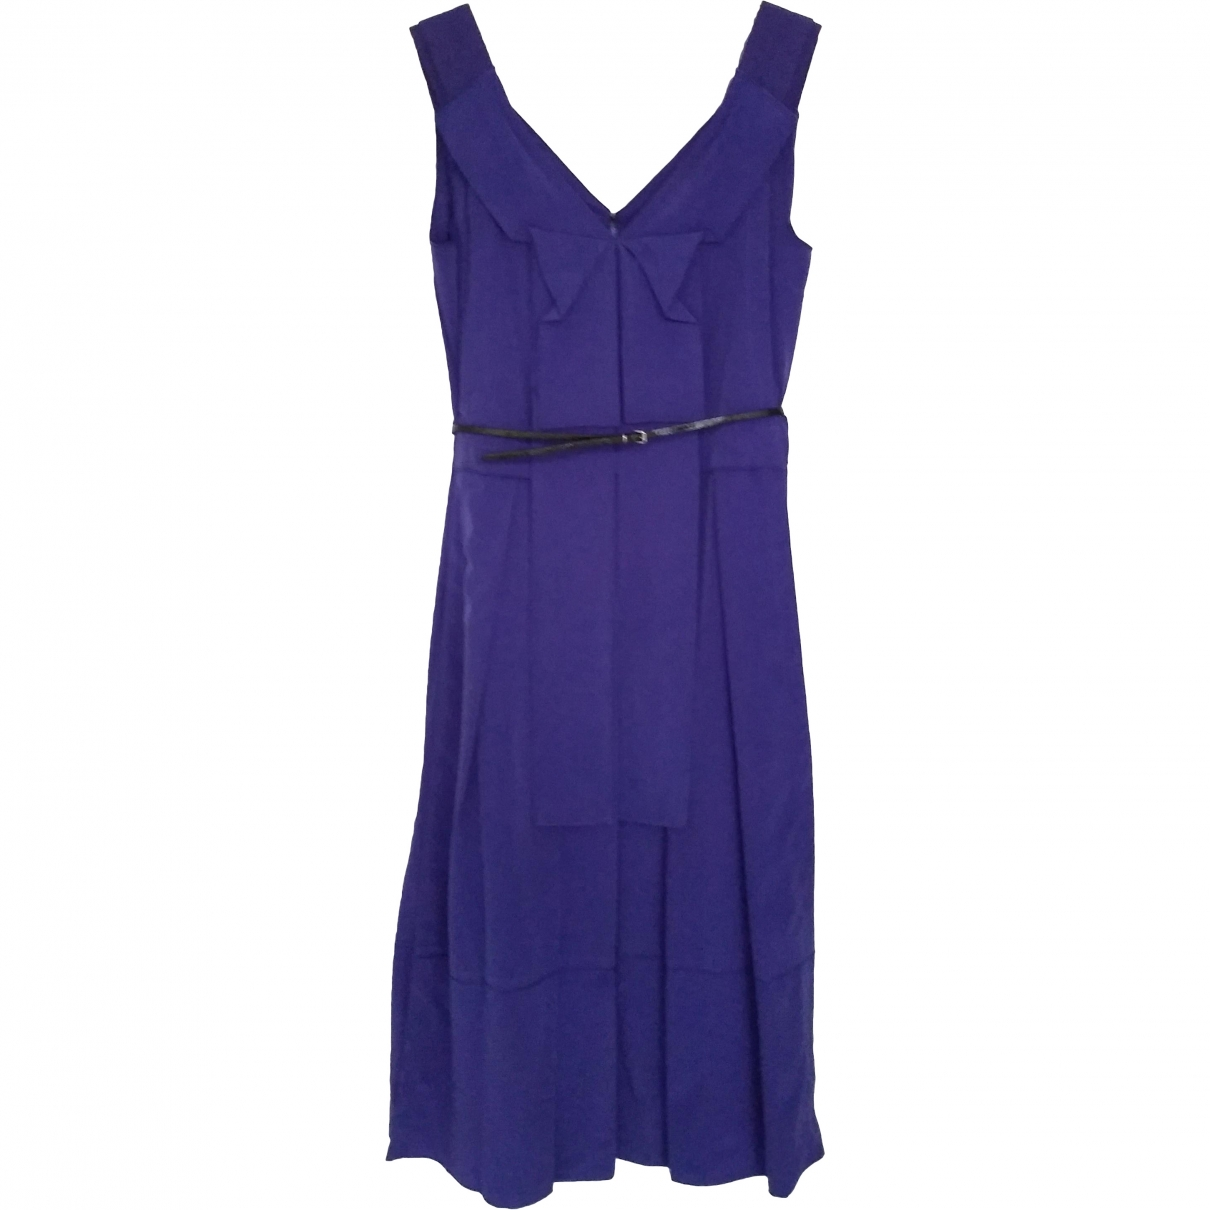 Marc Jacobs \N Kleid in  Lila Polyester